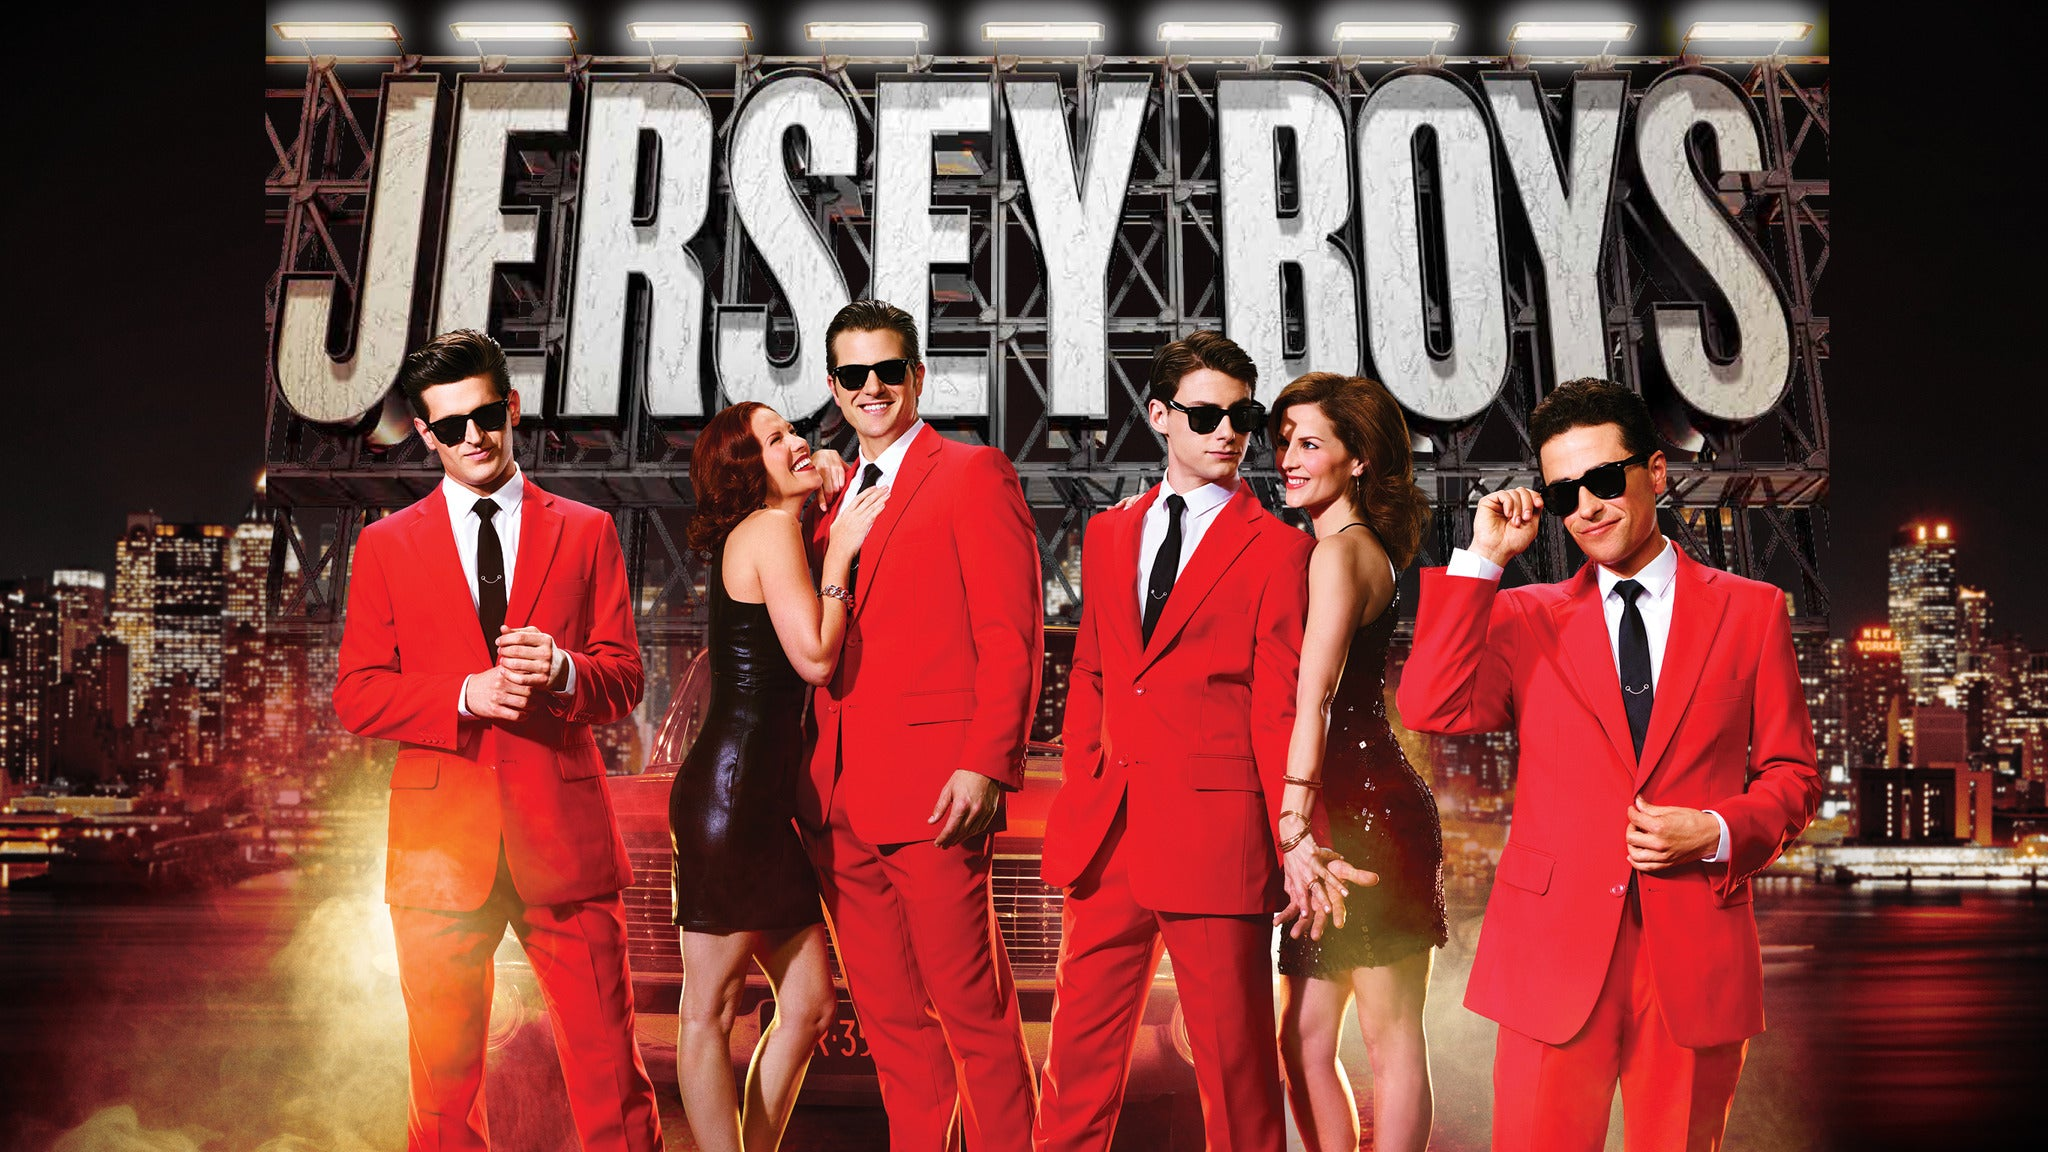 American Theatre Guild presents Jersey Boys